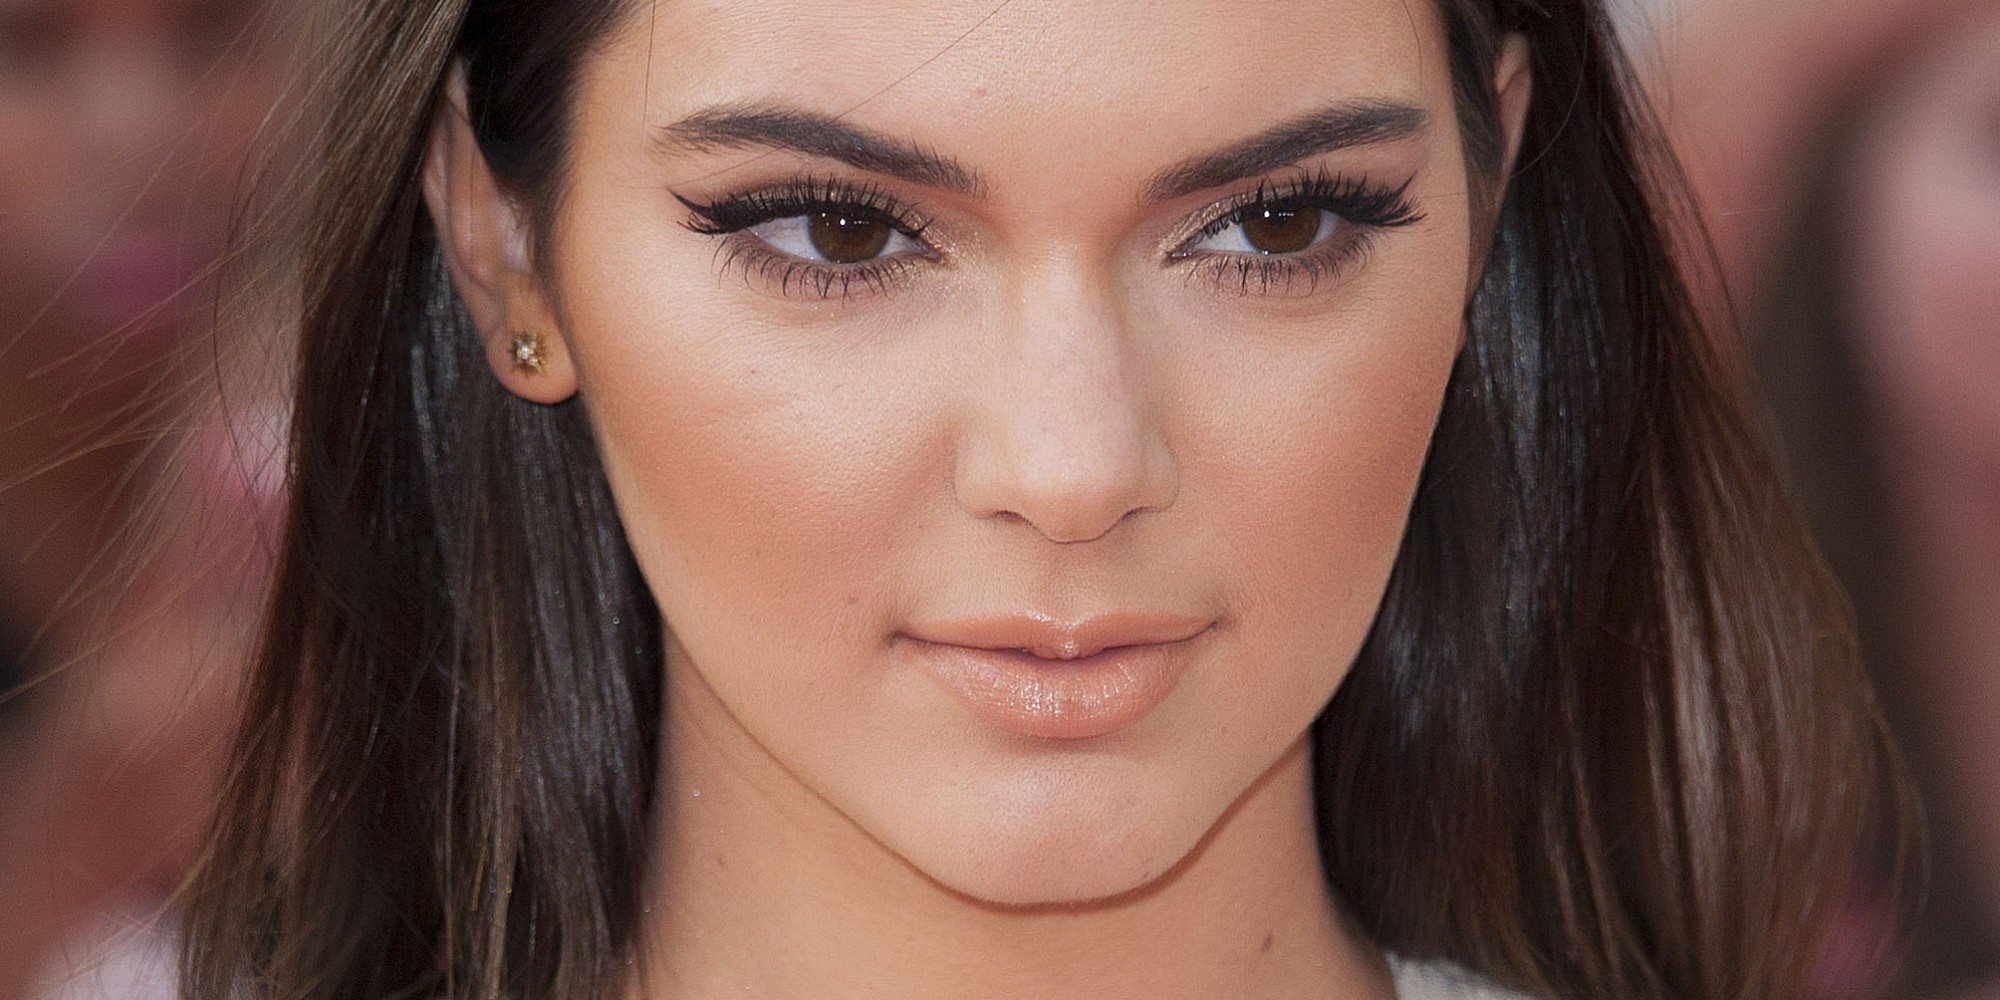 Kendall Jenner poses for a photo on the red carpet during the 2014 MuchMusic Video Awads on Sunday, June 15, 2014 in Toronto, Canada. (Photo by Arthur Mola/Invision/AP)